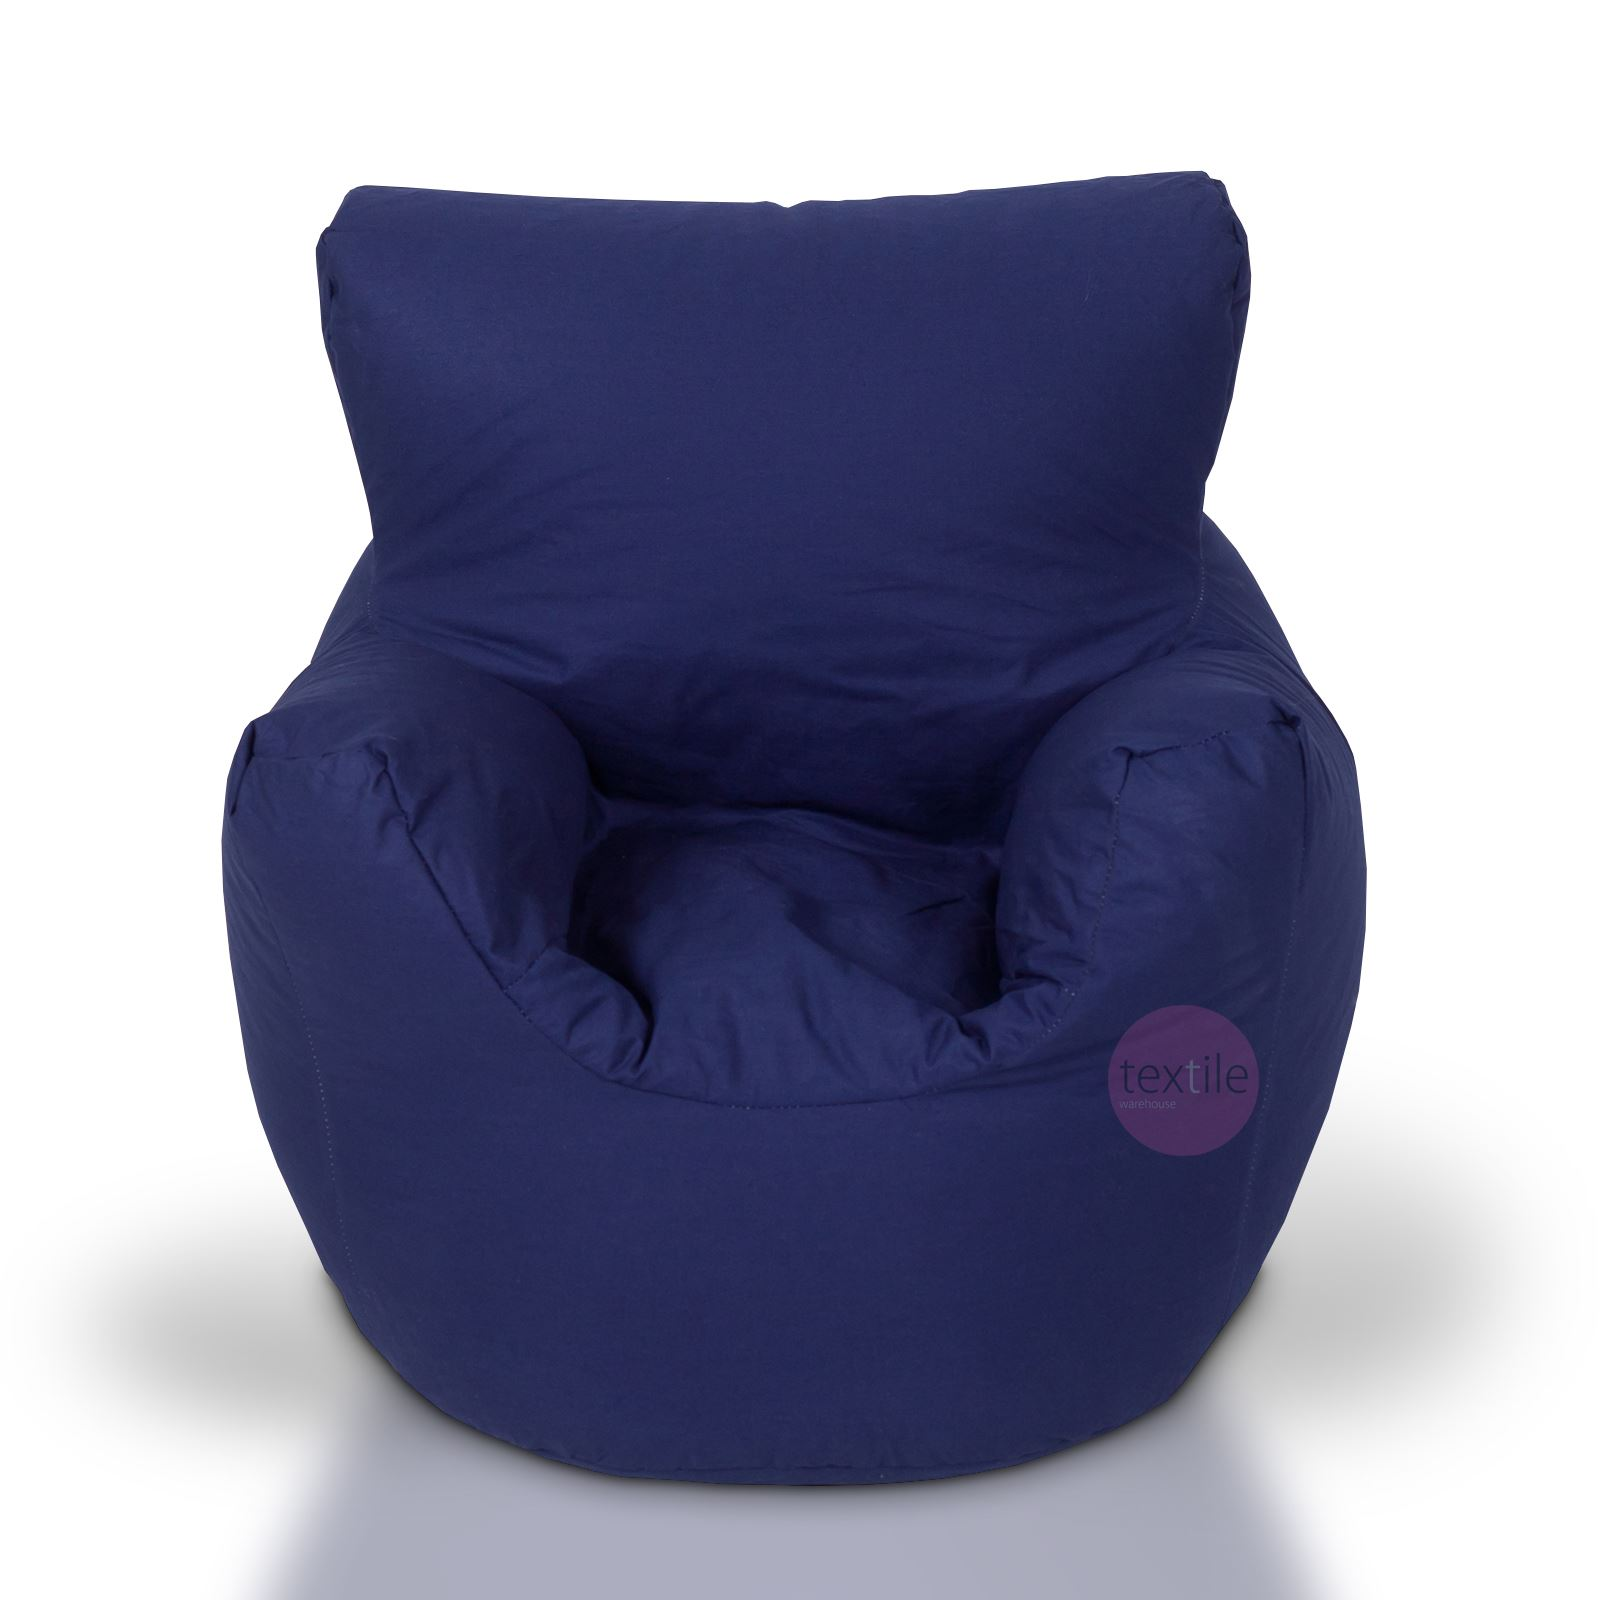 100-Cotton-Beanbag-Bean-Bag-with-Filling-Childrens-Chair-Seat-Bedroom-Play-Room